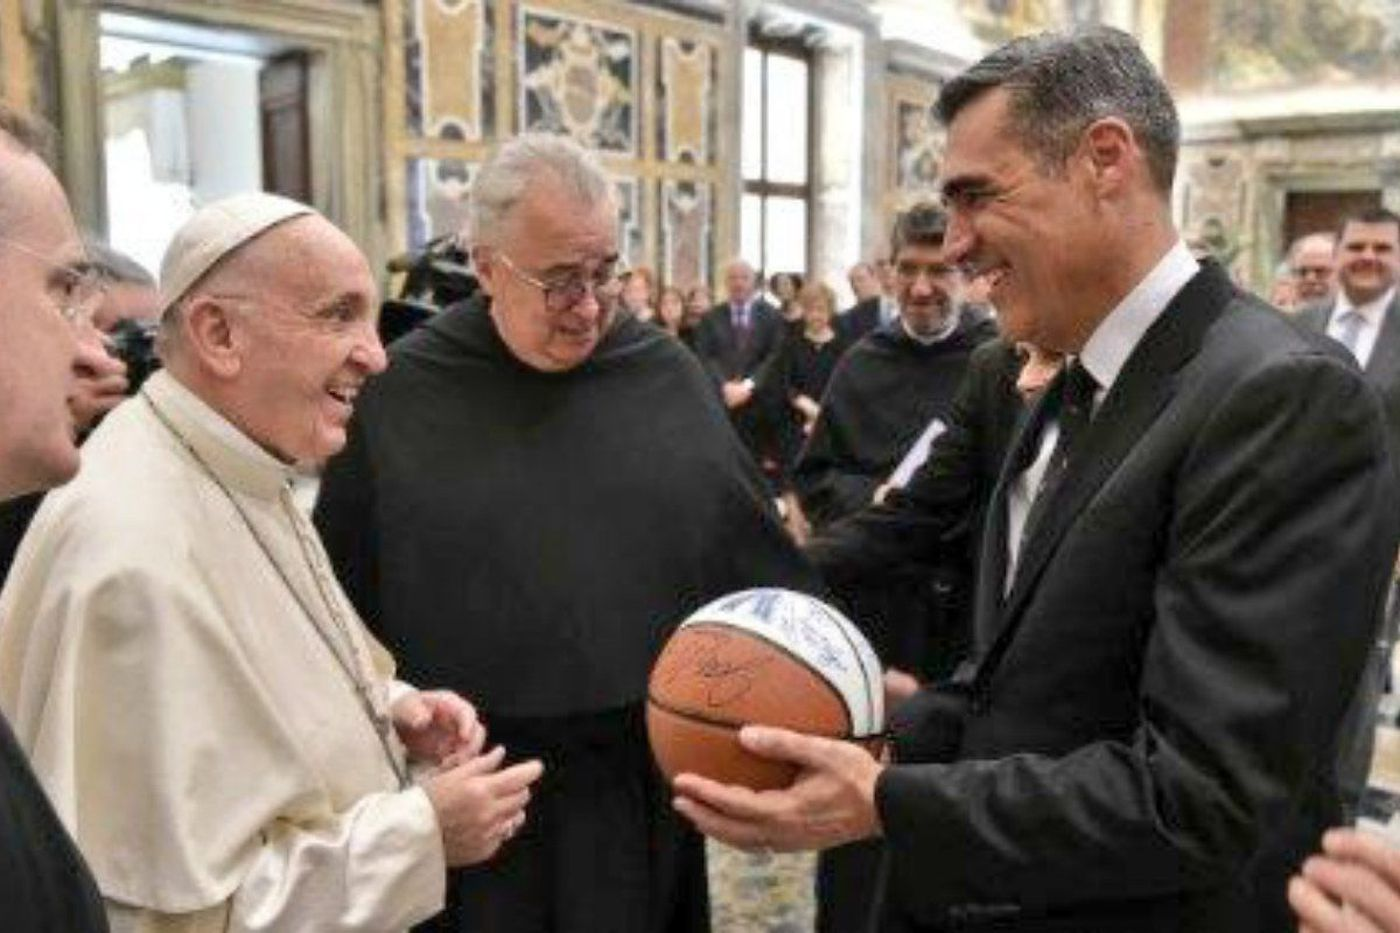 Jay Wright's memorable offseason experience: A visit with Pope Francis